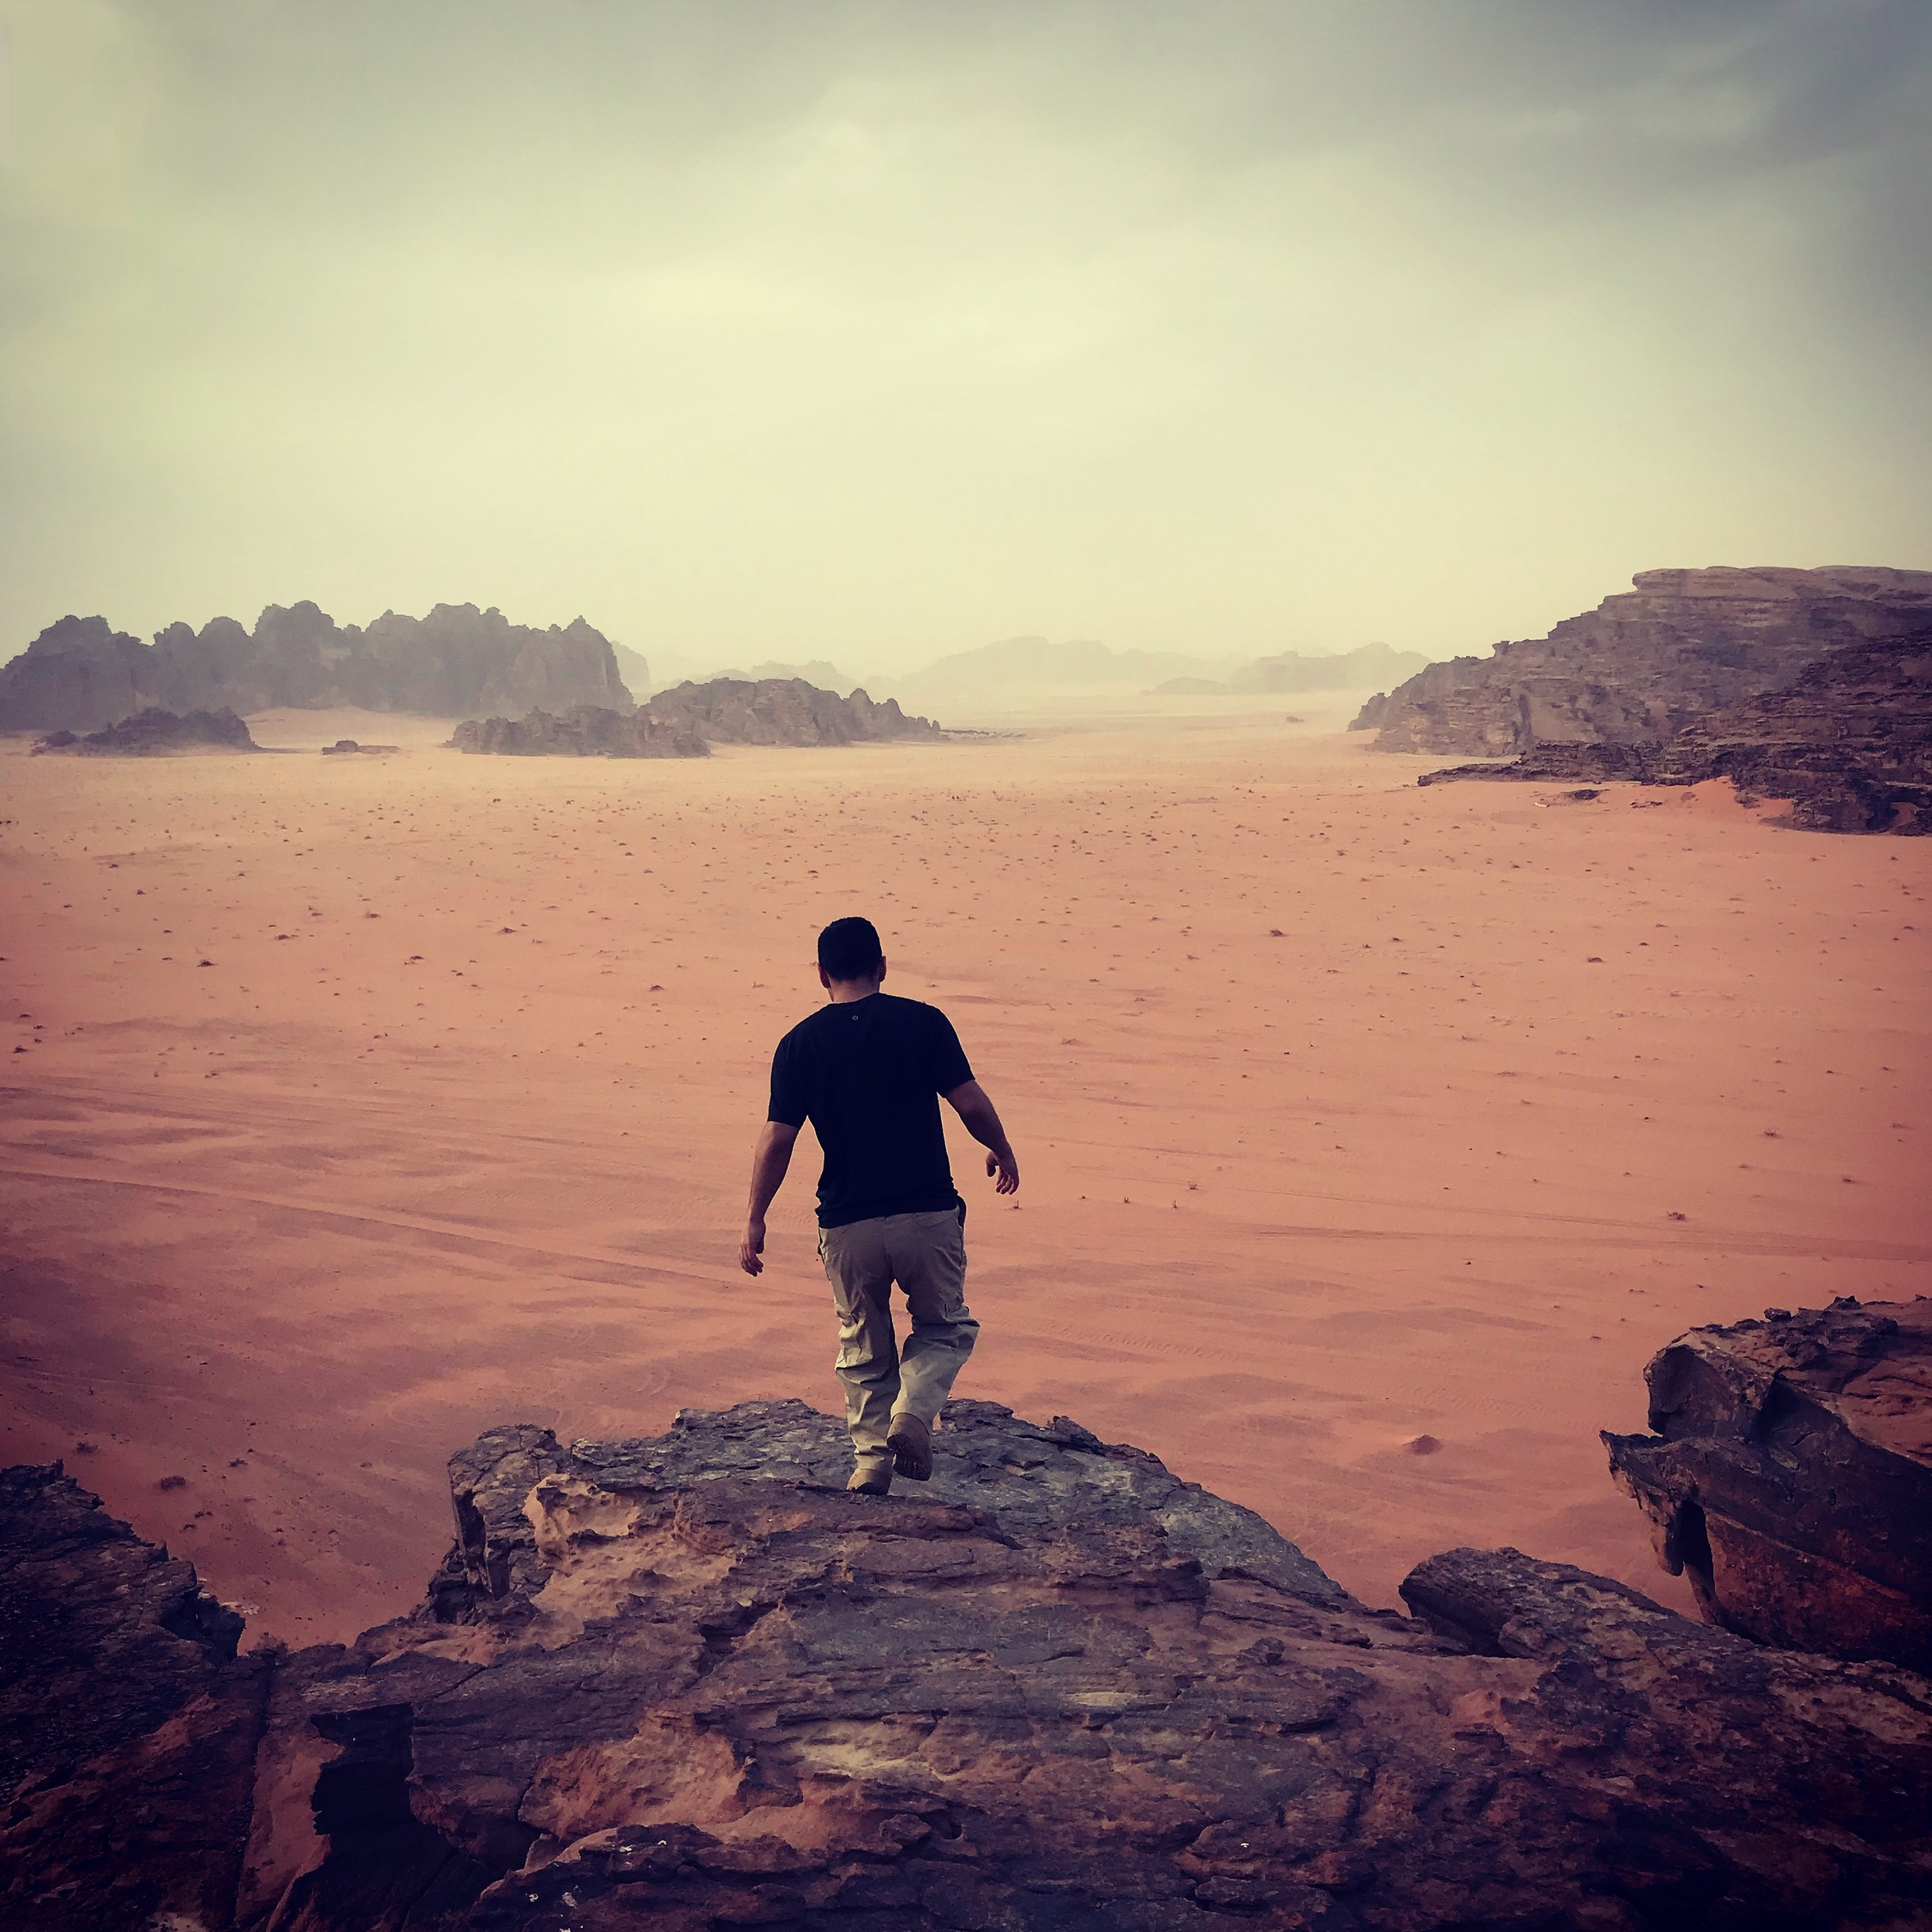 This photo from a Jordan spring 2018 student during his time in Wadi Rum won second place!